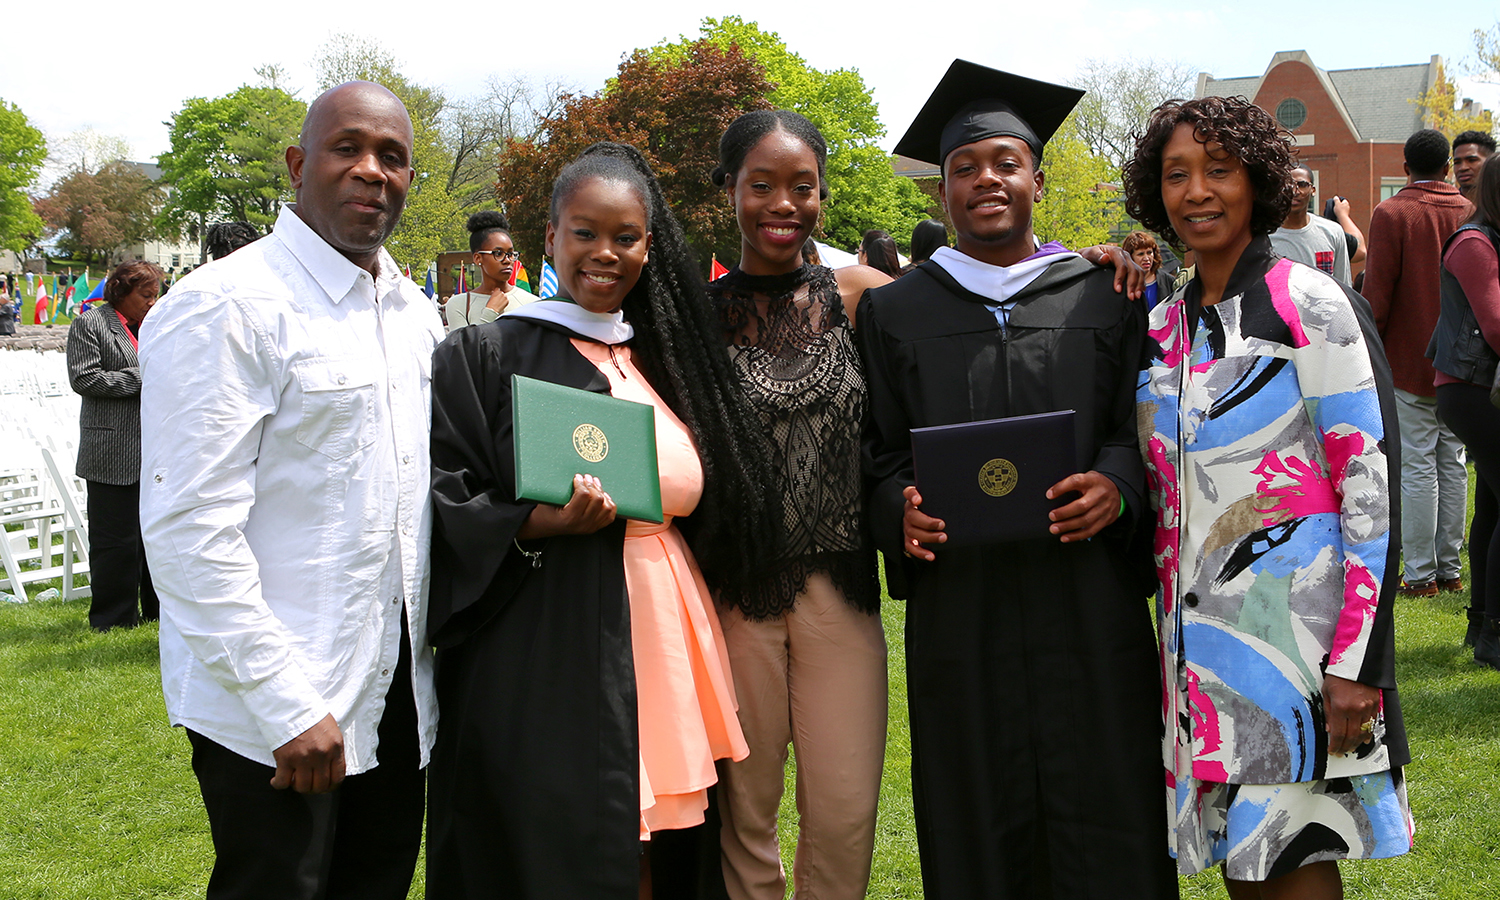 Amber Williams '17 (second from left) and Kenan Williams '17 (second from right) gather for a family photo on the Quad.